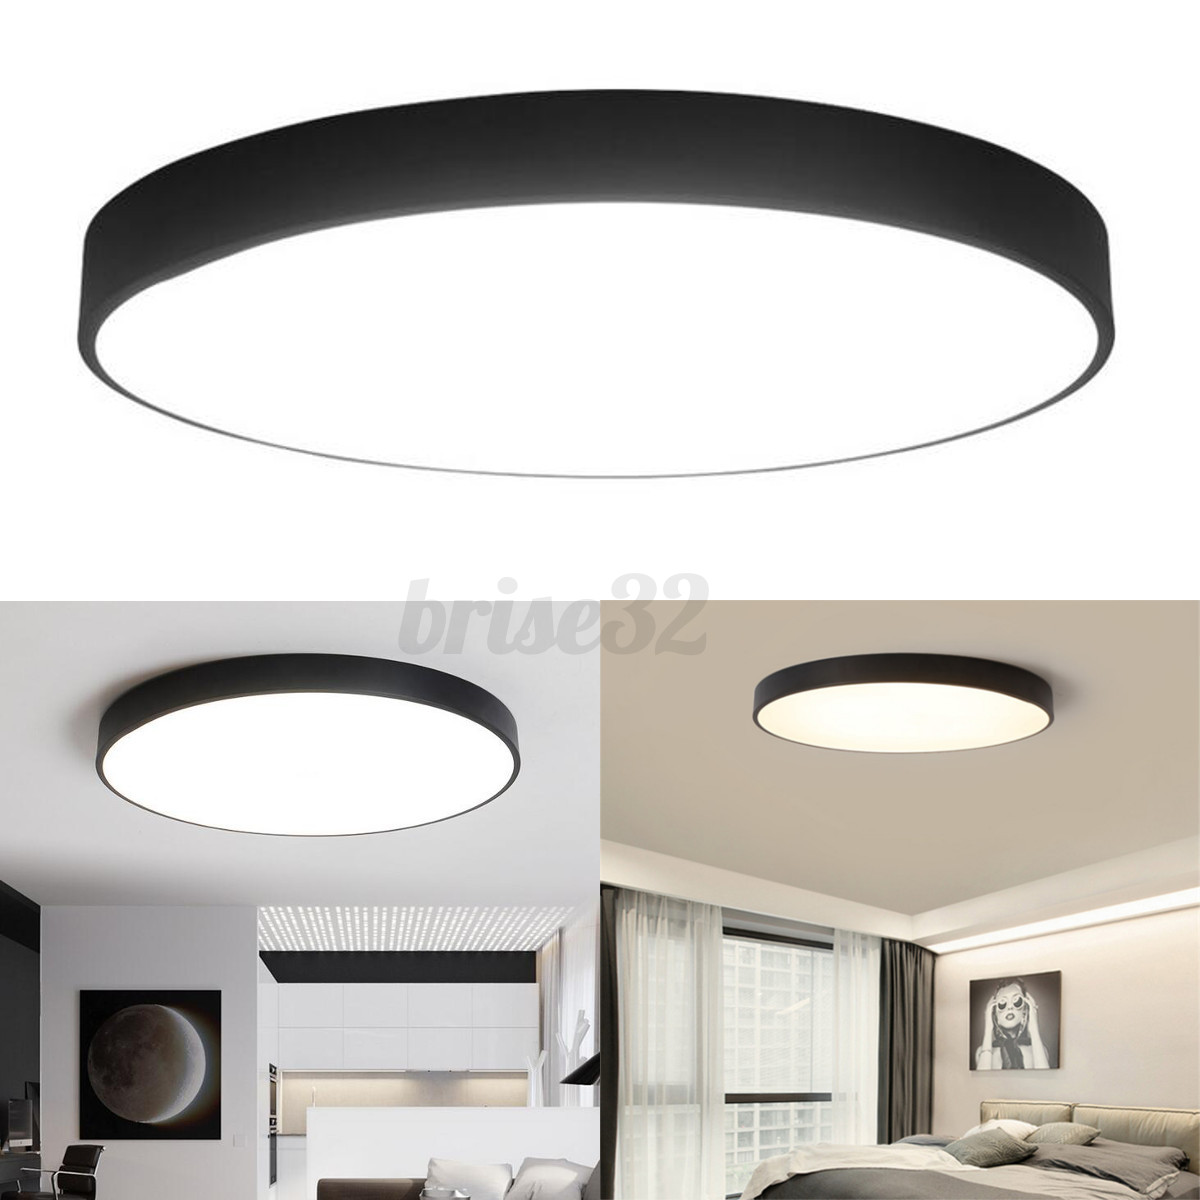 Led round ceiling down light fixture home bedroom living room round led ceiling down light fixture home bedroom living room surface mount lamp usd1916 arubaitofo Images